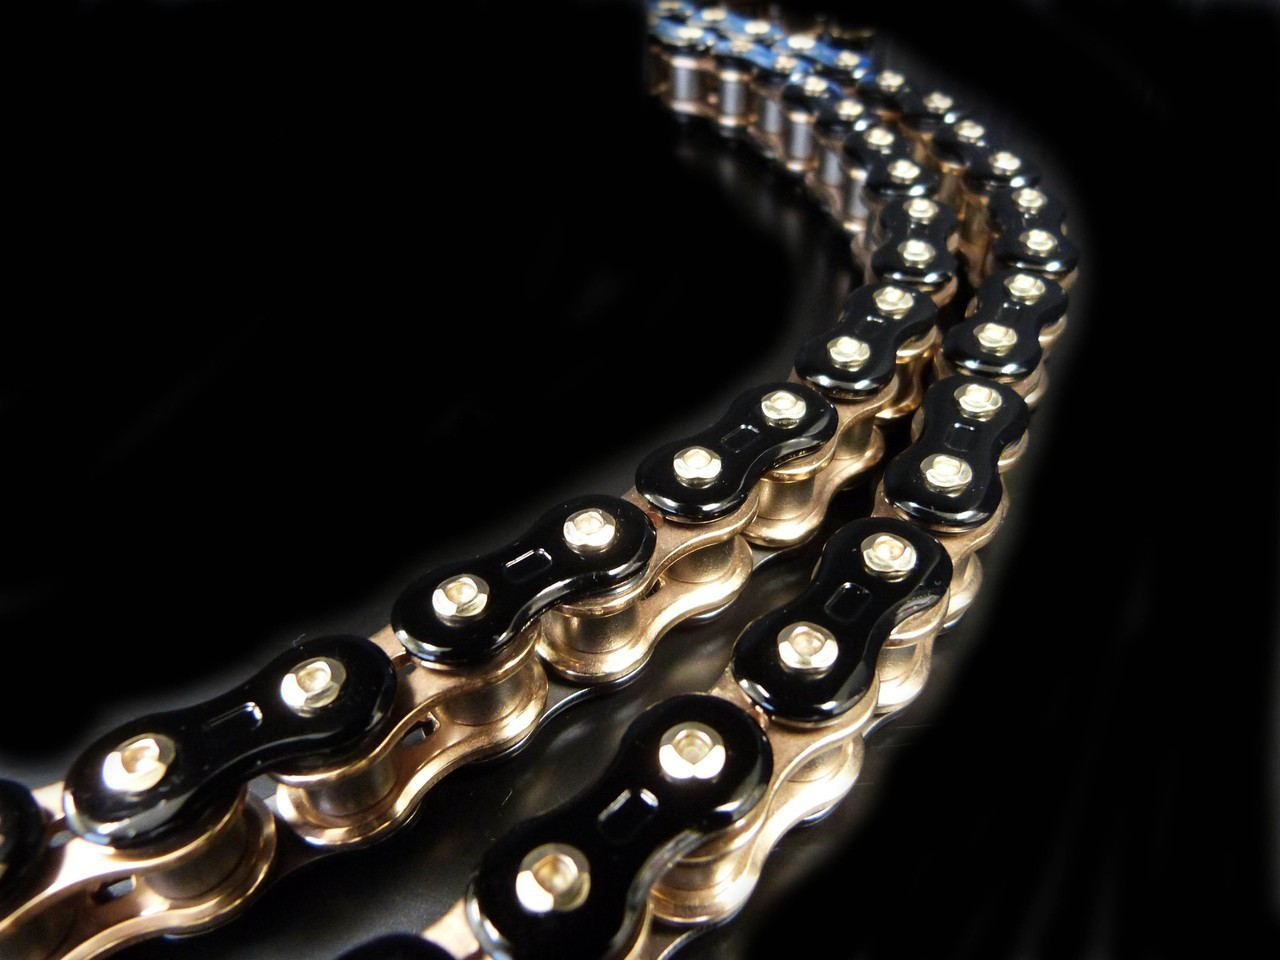 EK 3D (ThreeD) Chain - Black, Gold or Chrome